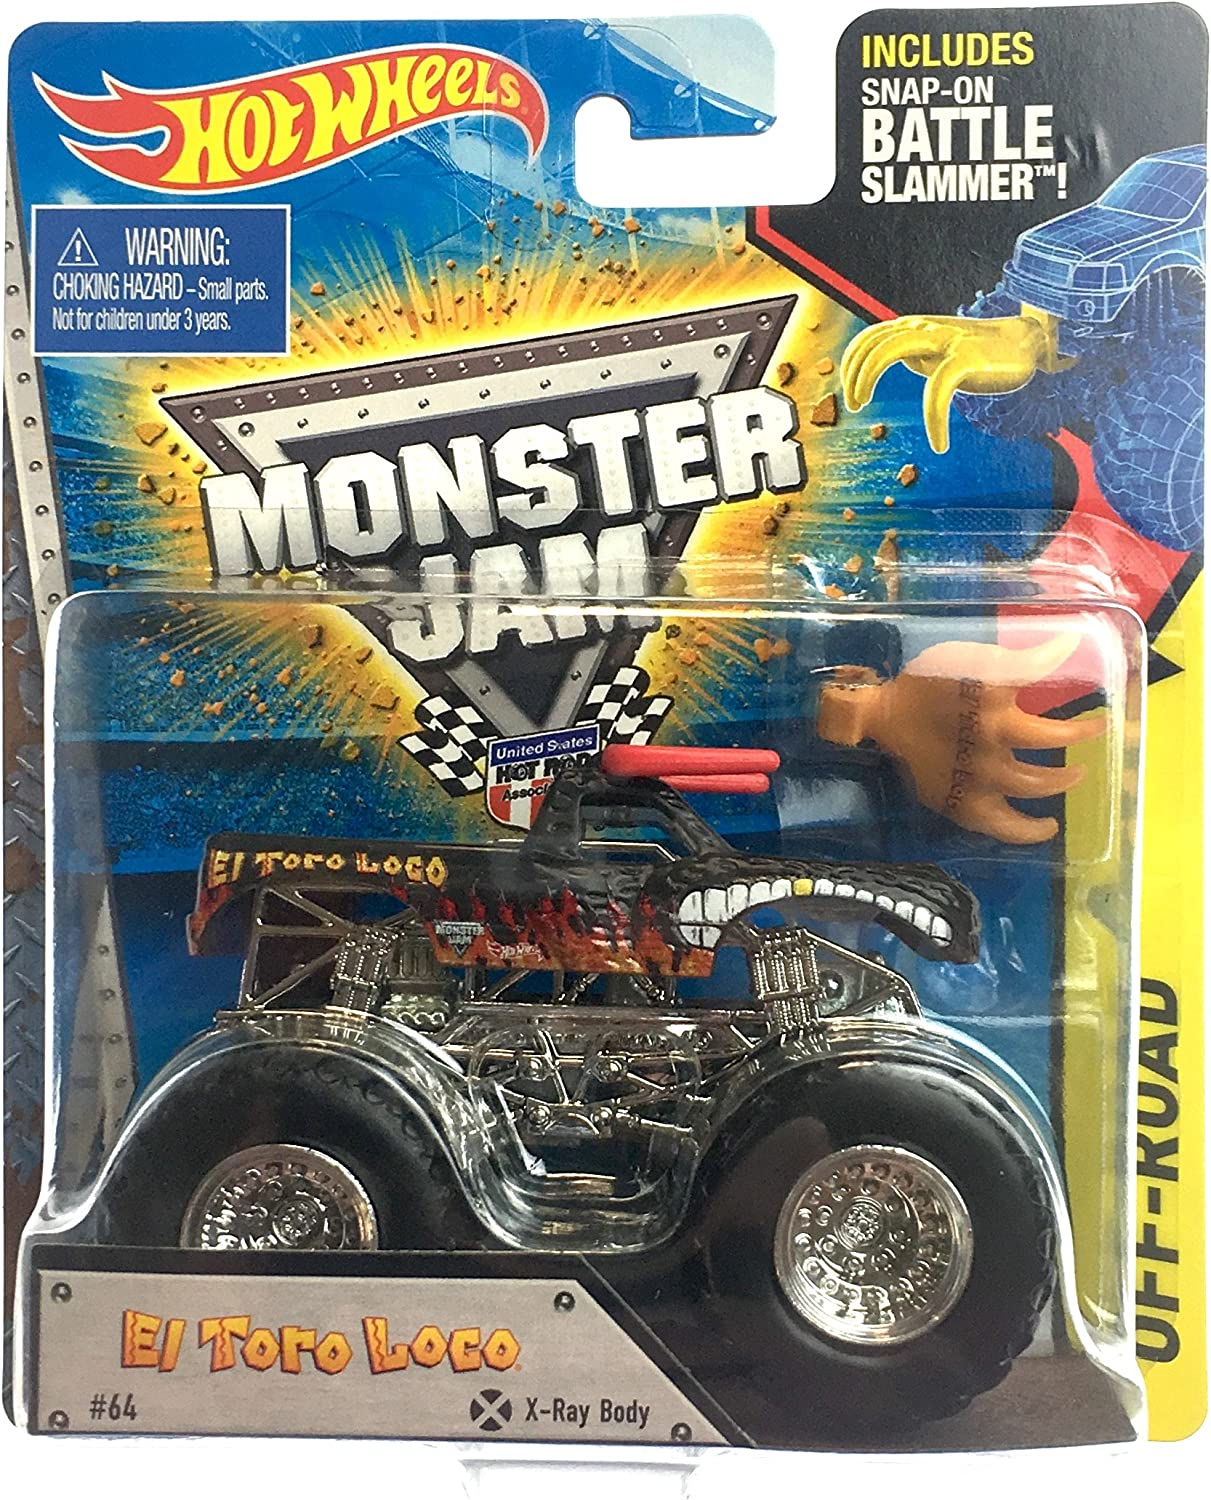 HOT WHEELS MONSTER JAM 1 64 SCALE EL Tgold LOCO MONSTER TRUCK INCLUDES TOPPS TRADING CARD, GRAVE DIGGER 30TH ANNIVERSARY